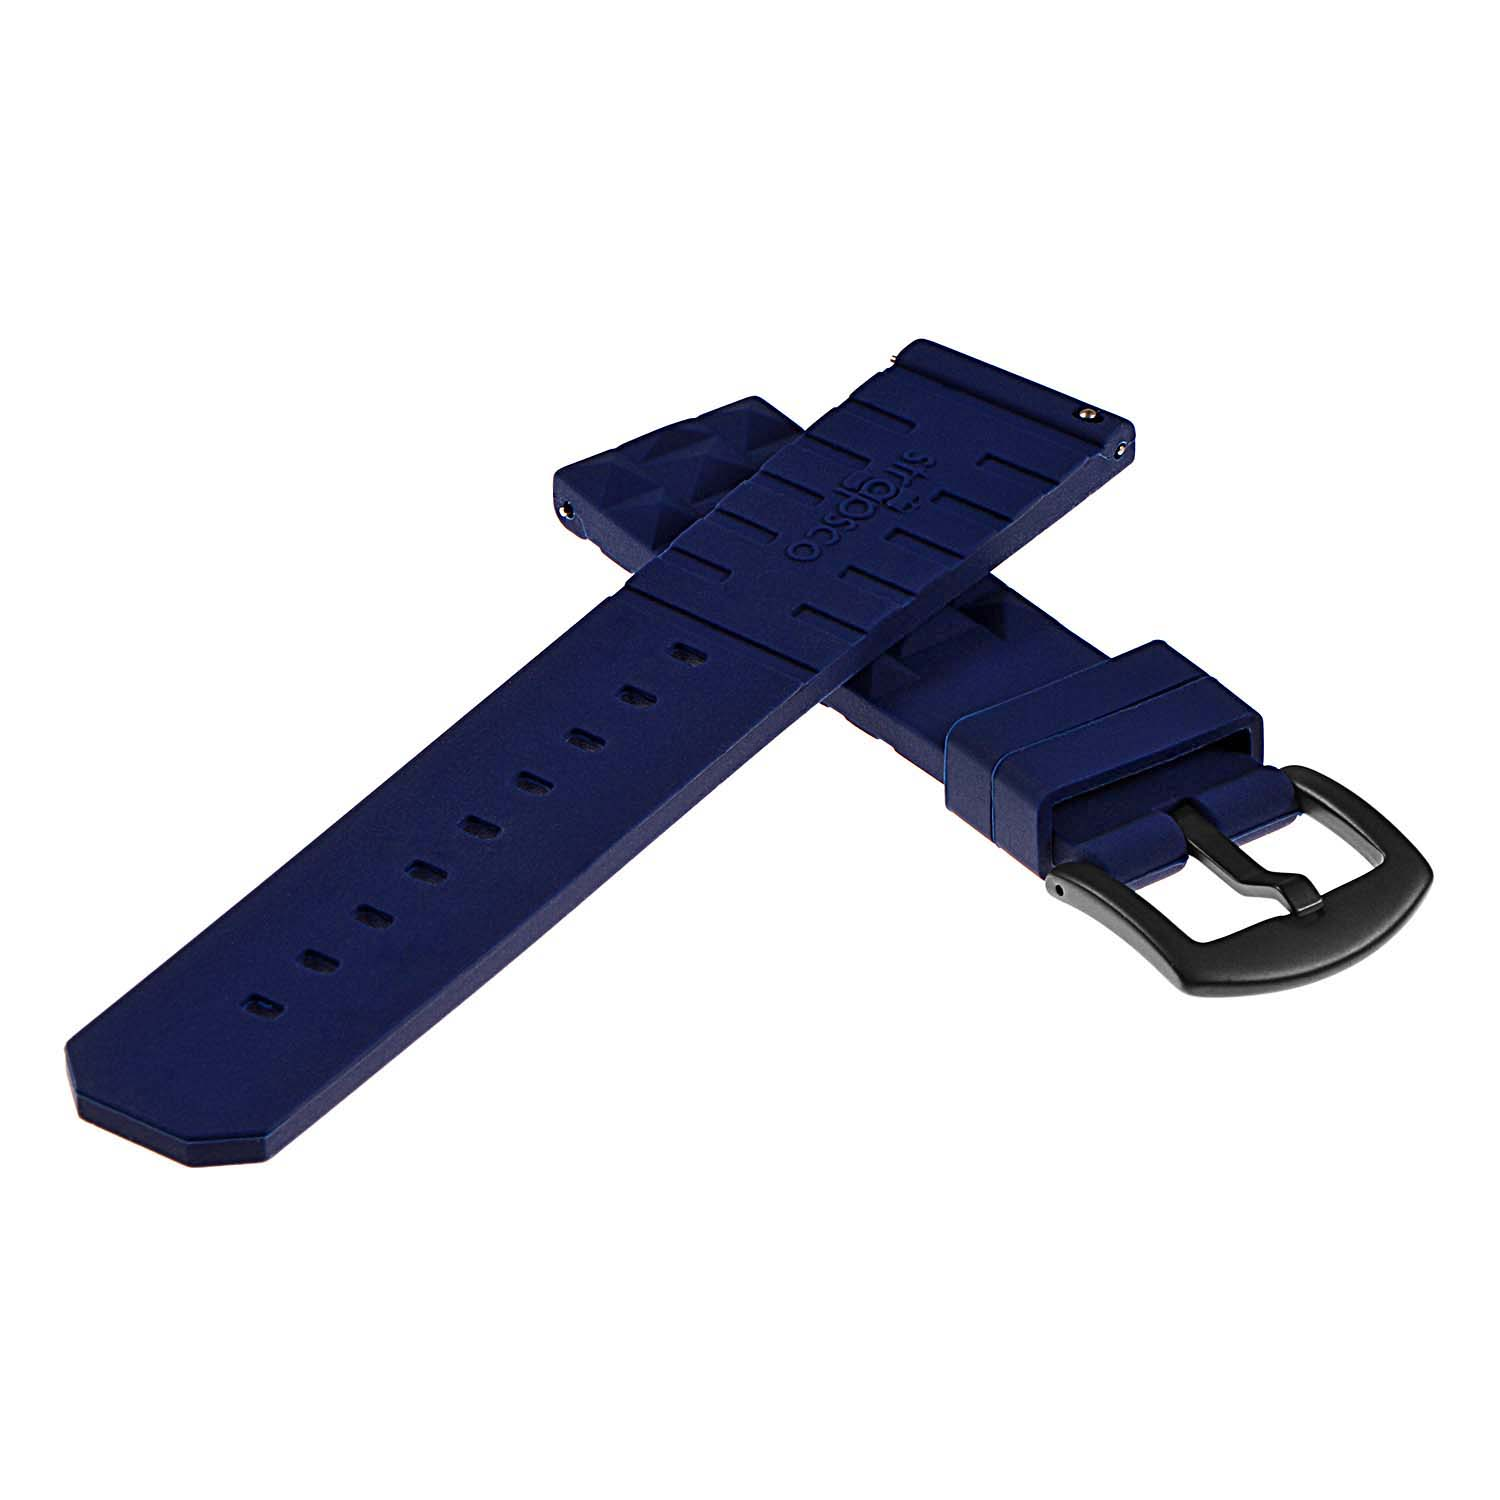 48ae6a5fb74 Pu16.5.mb Back Silicone Rubber Strap With Matte Black Buckle In Dark Blue